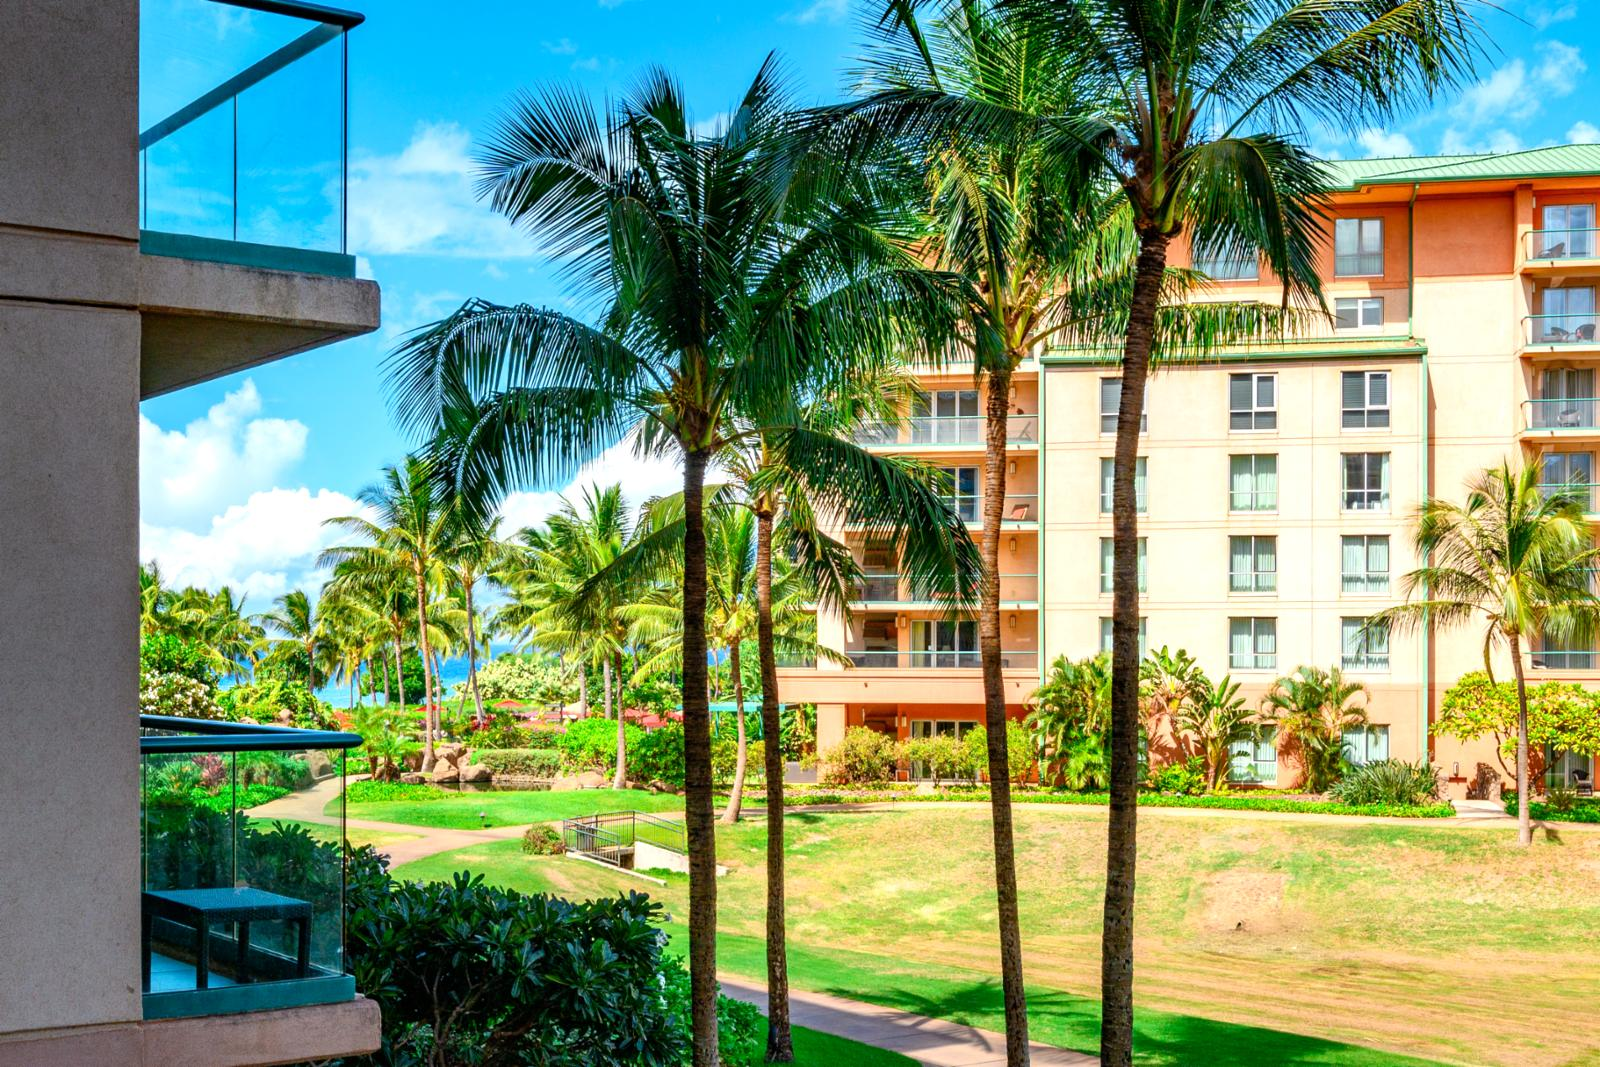 Tropical landscaping with walking paths to the beach